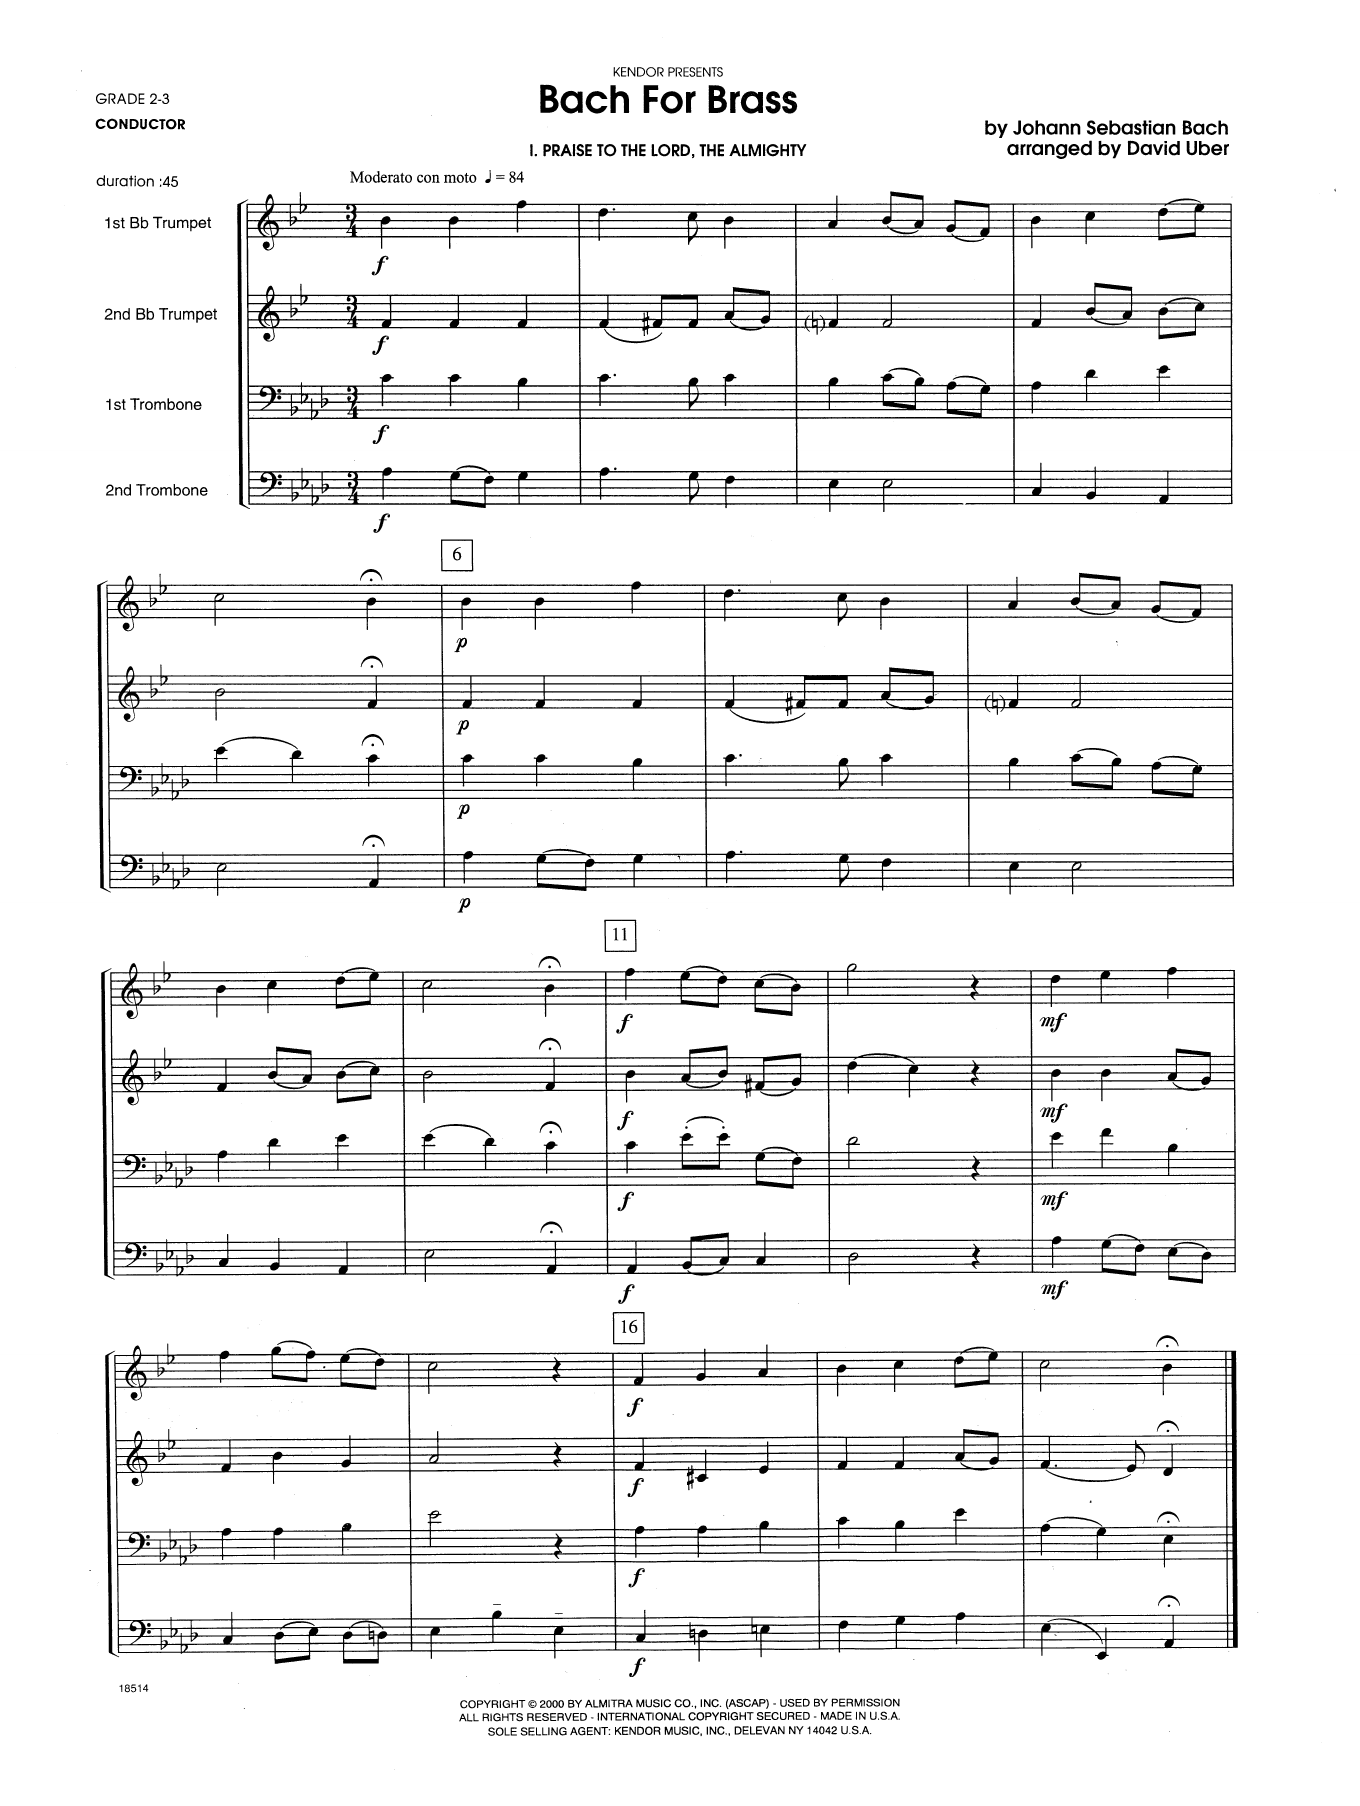 Bach For Brass (COMPLETE) sheet music for voice, piano or guitar by Johann Sebastian Bach